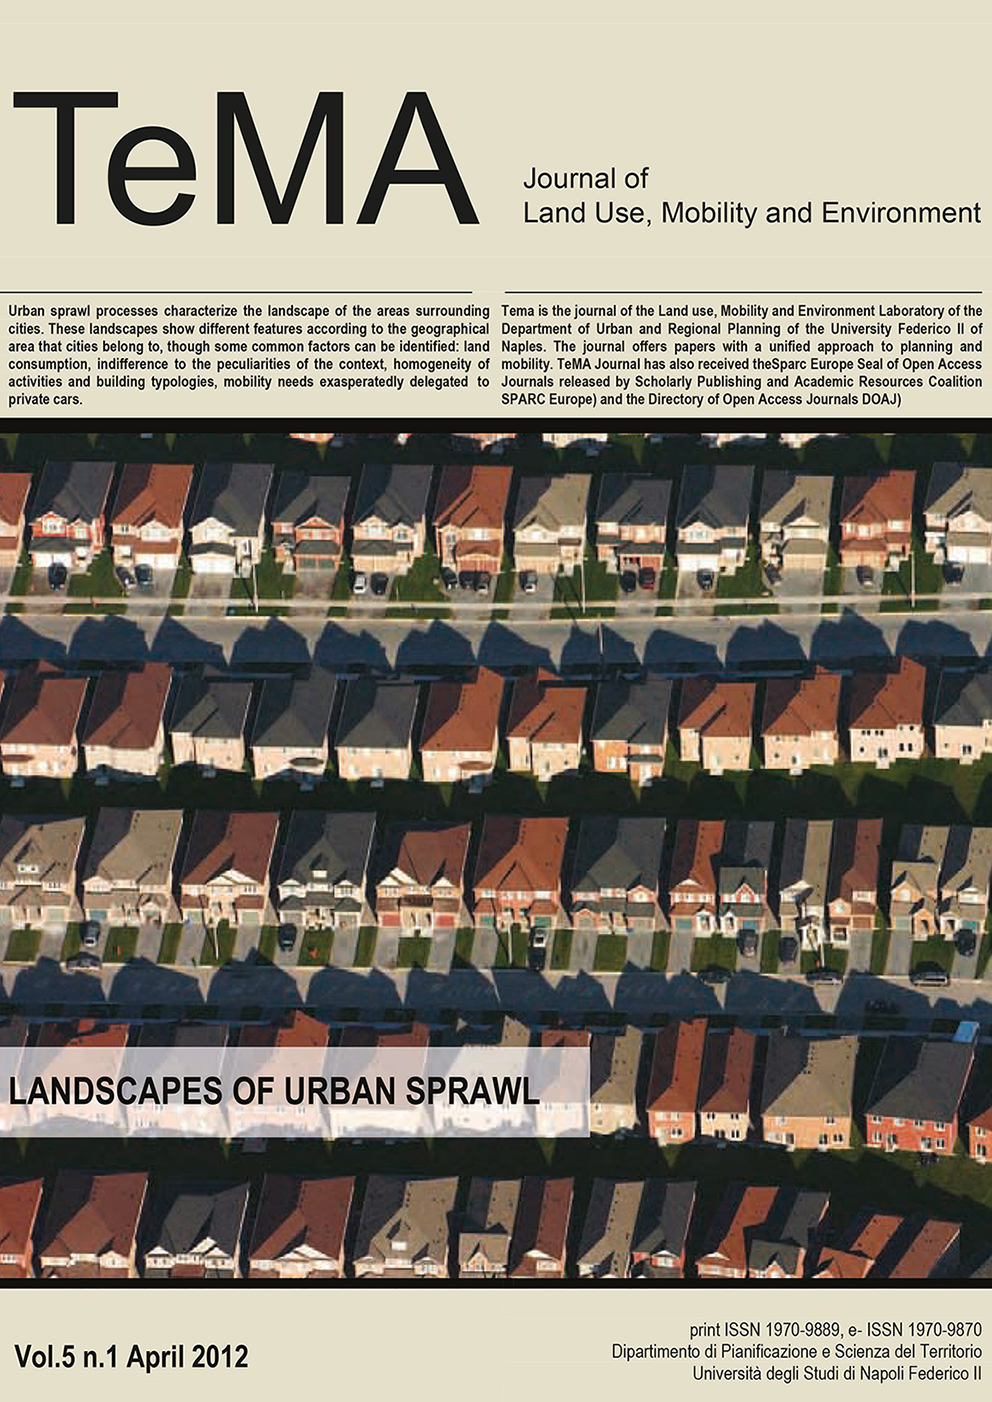 19_Vol 5, N° 1 (2012): Landscapes of Urban Sprawl